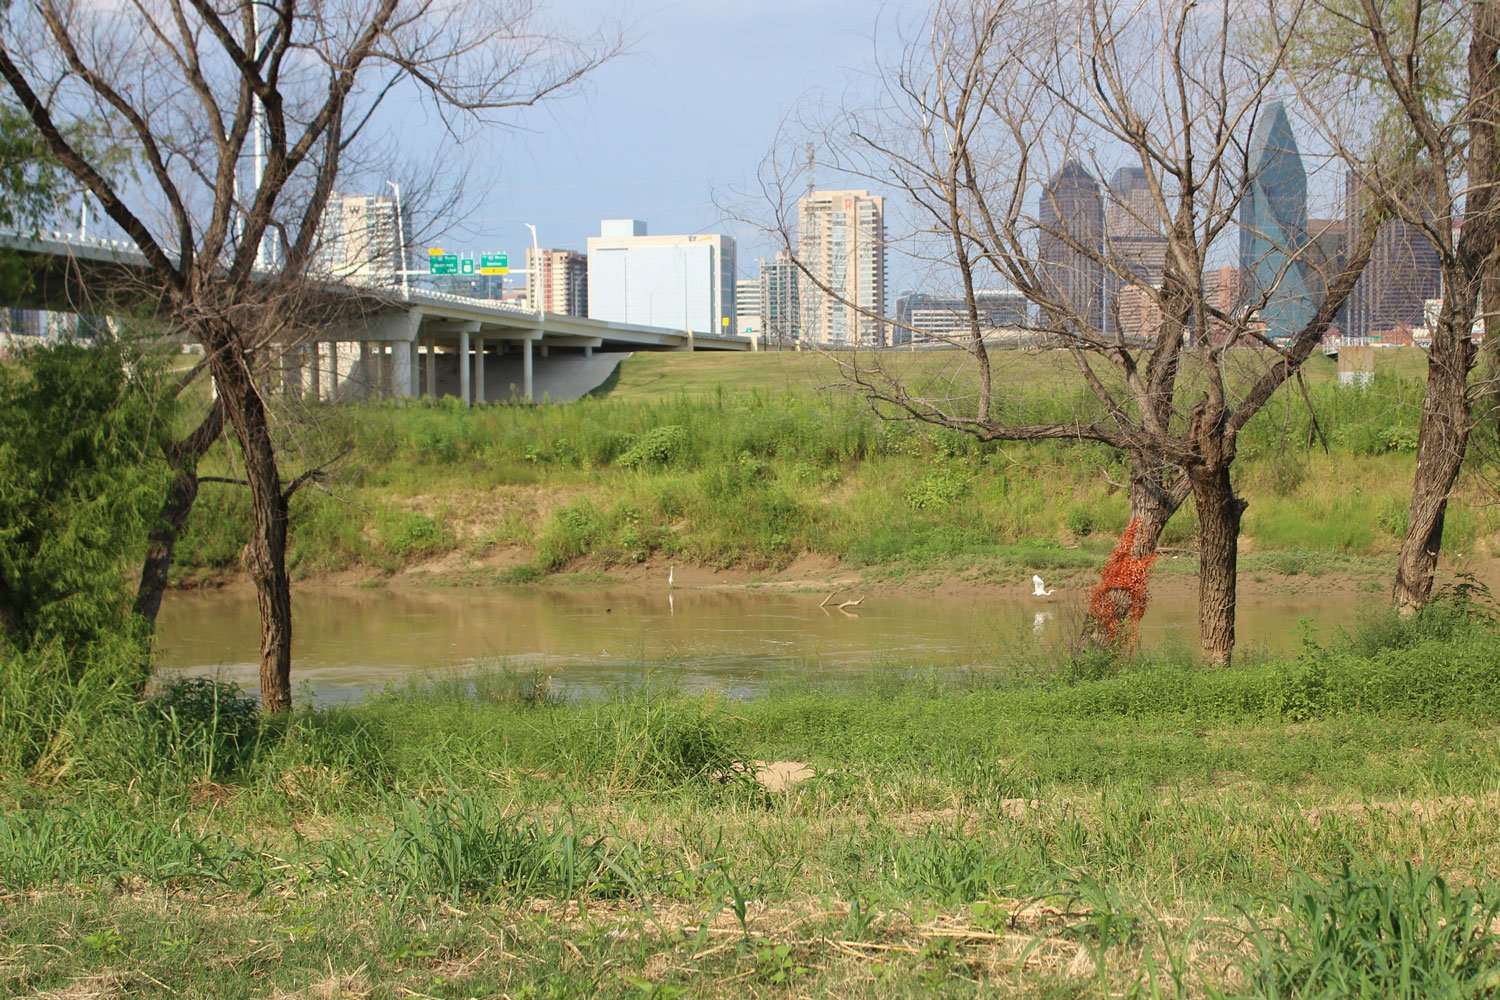 Dallas has long planned to turn the Trinity River floodplain near downtown into a massive urban park. But for years, plans for a riverside toll road cast a shadow of controversy over the project.